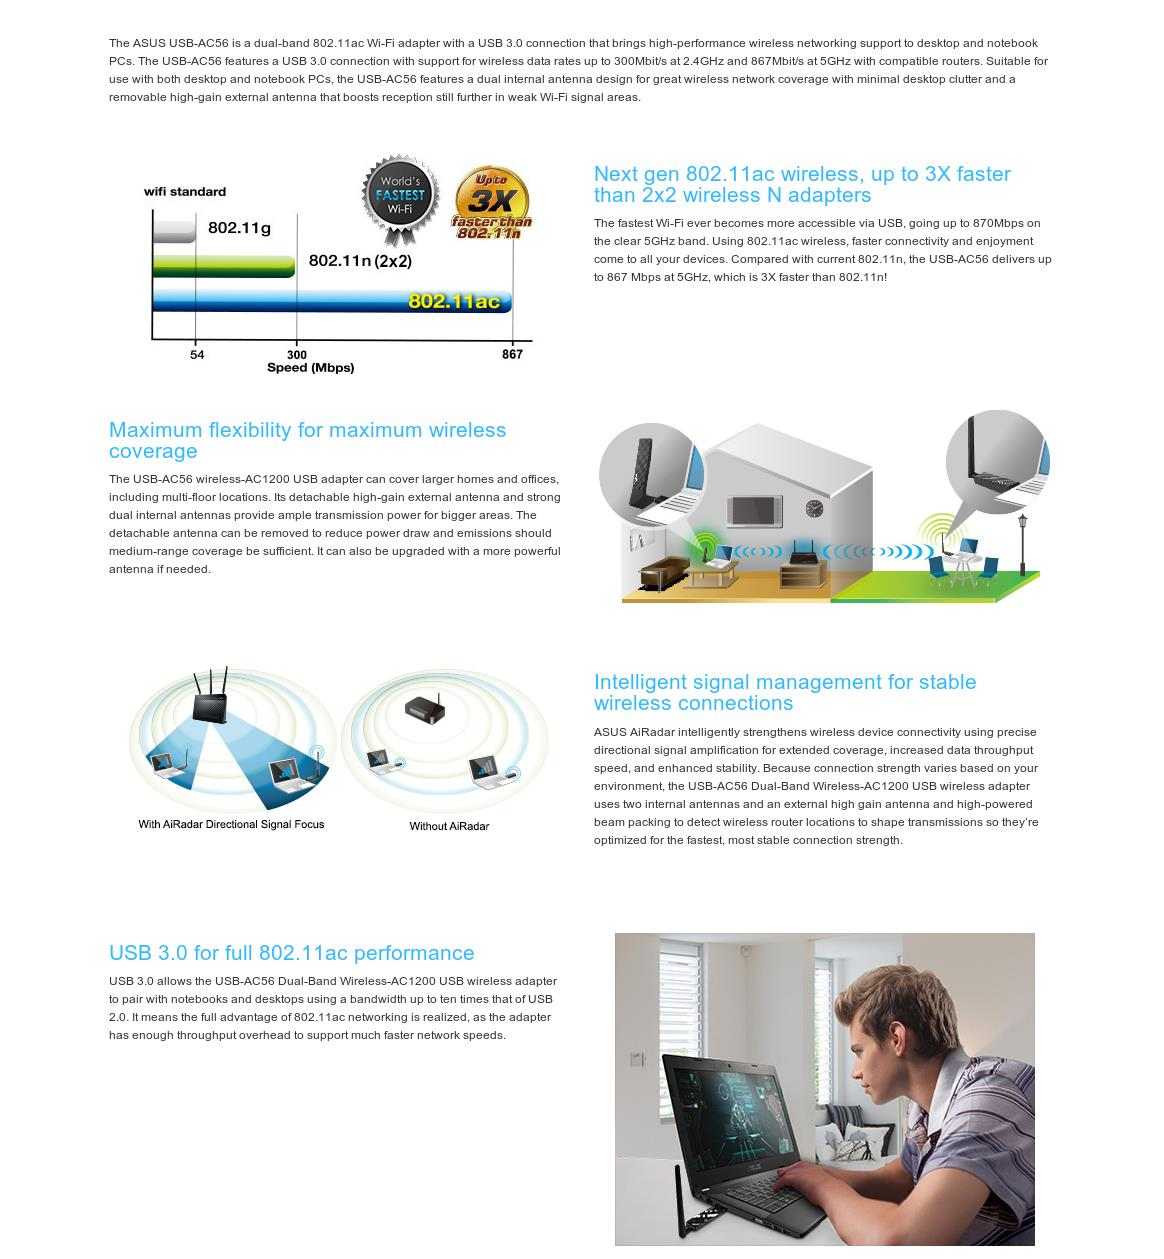 A large marketing image providing additional information about the product ASUS USB-AC56 802.11ac Dual-Band Wireless-AC1300 USB3.0 Adapter - Additional alt info not provided